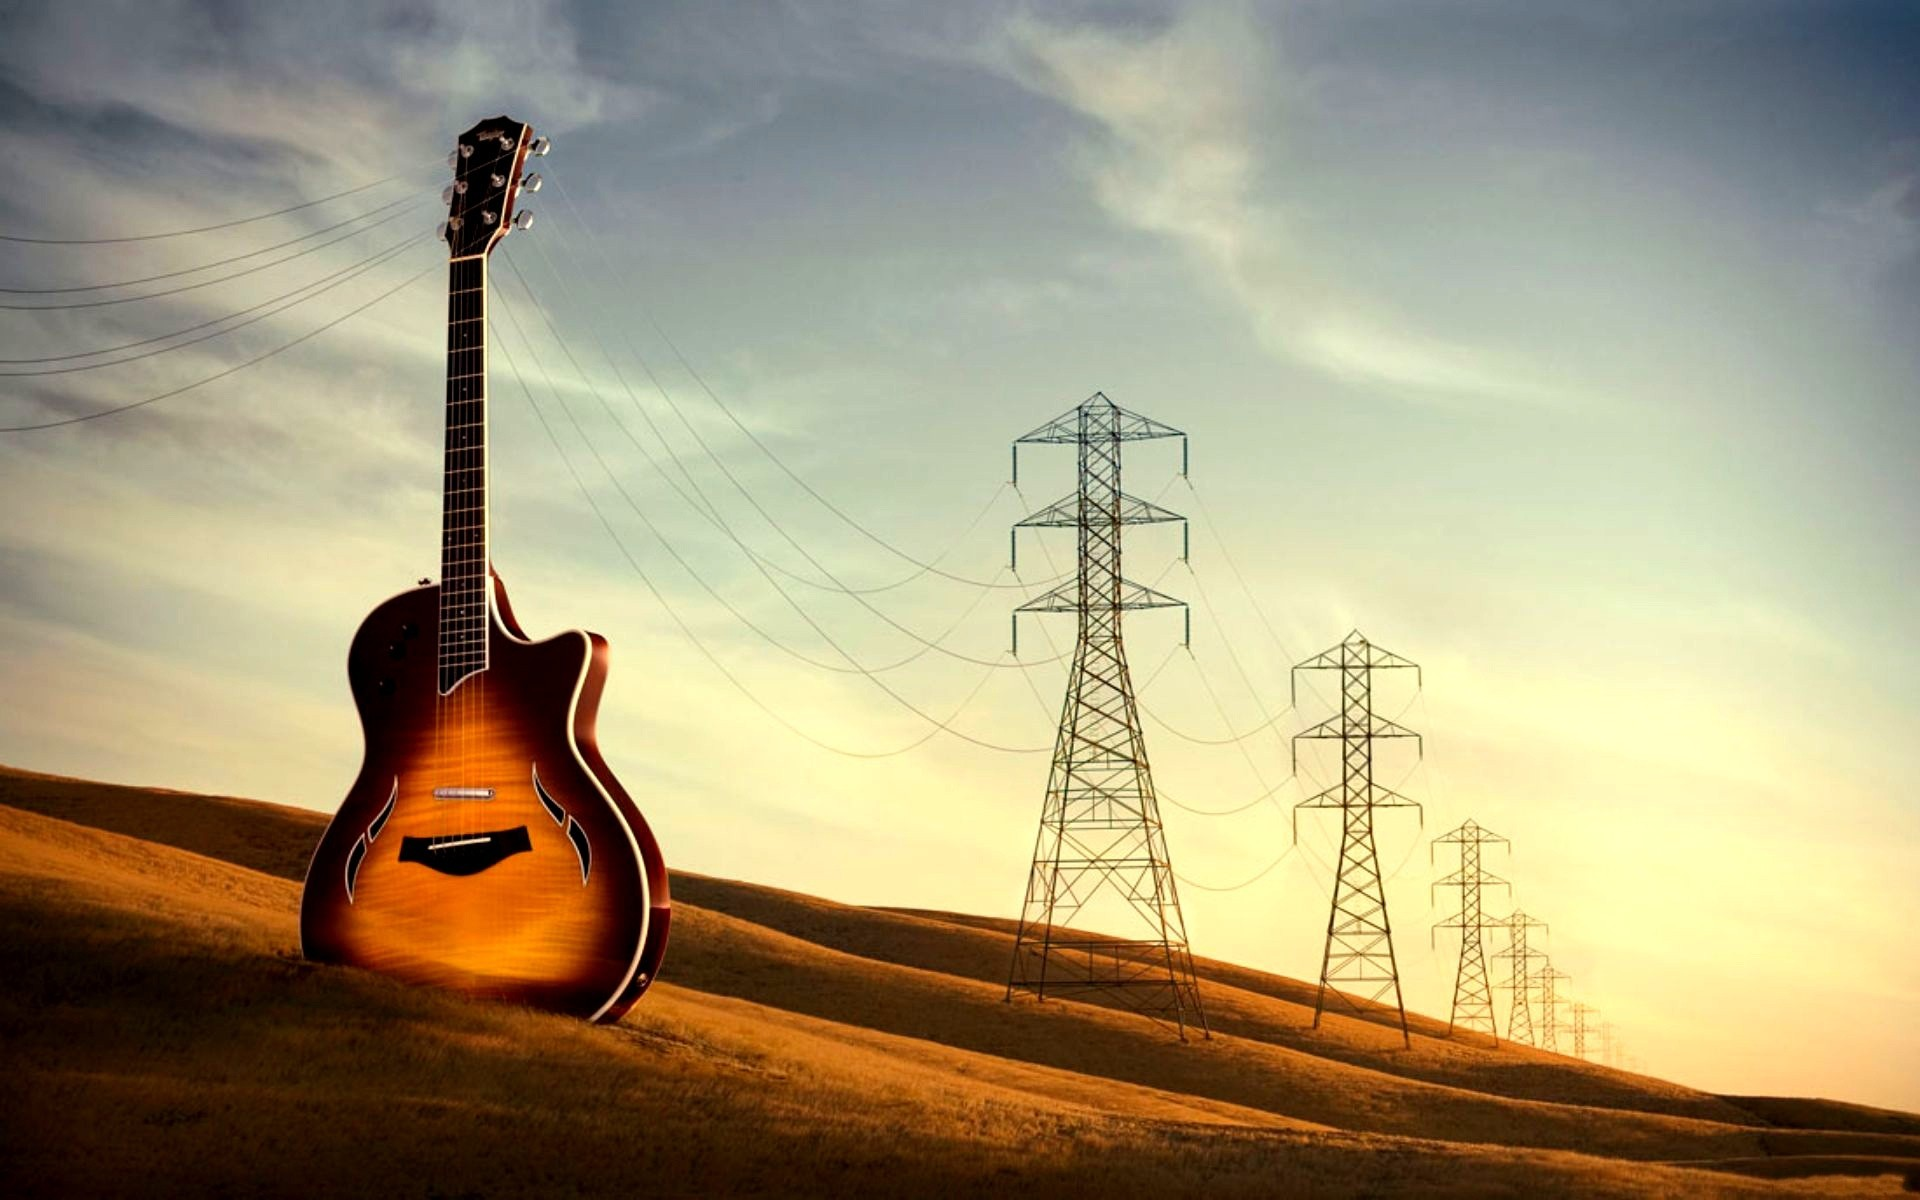 power lines Music HD Wallpaper